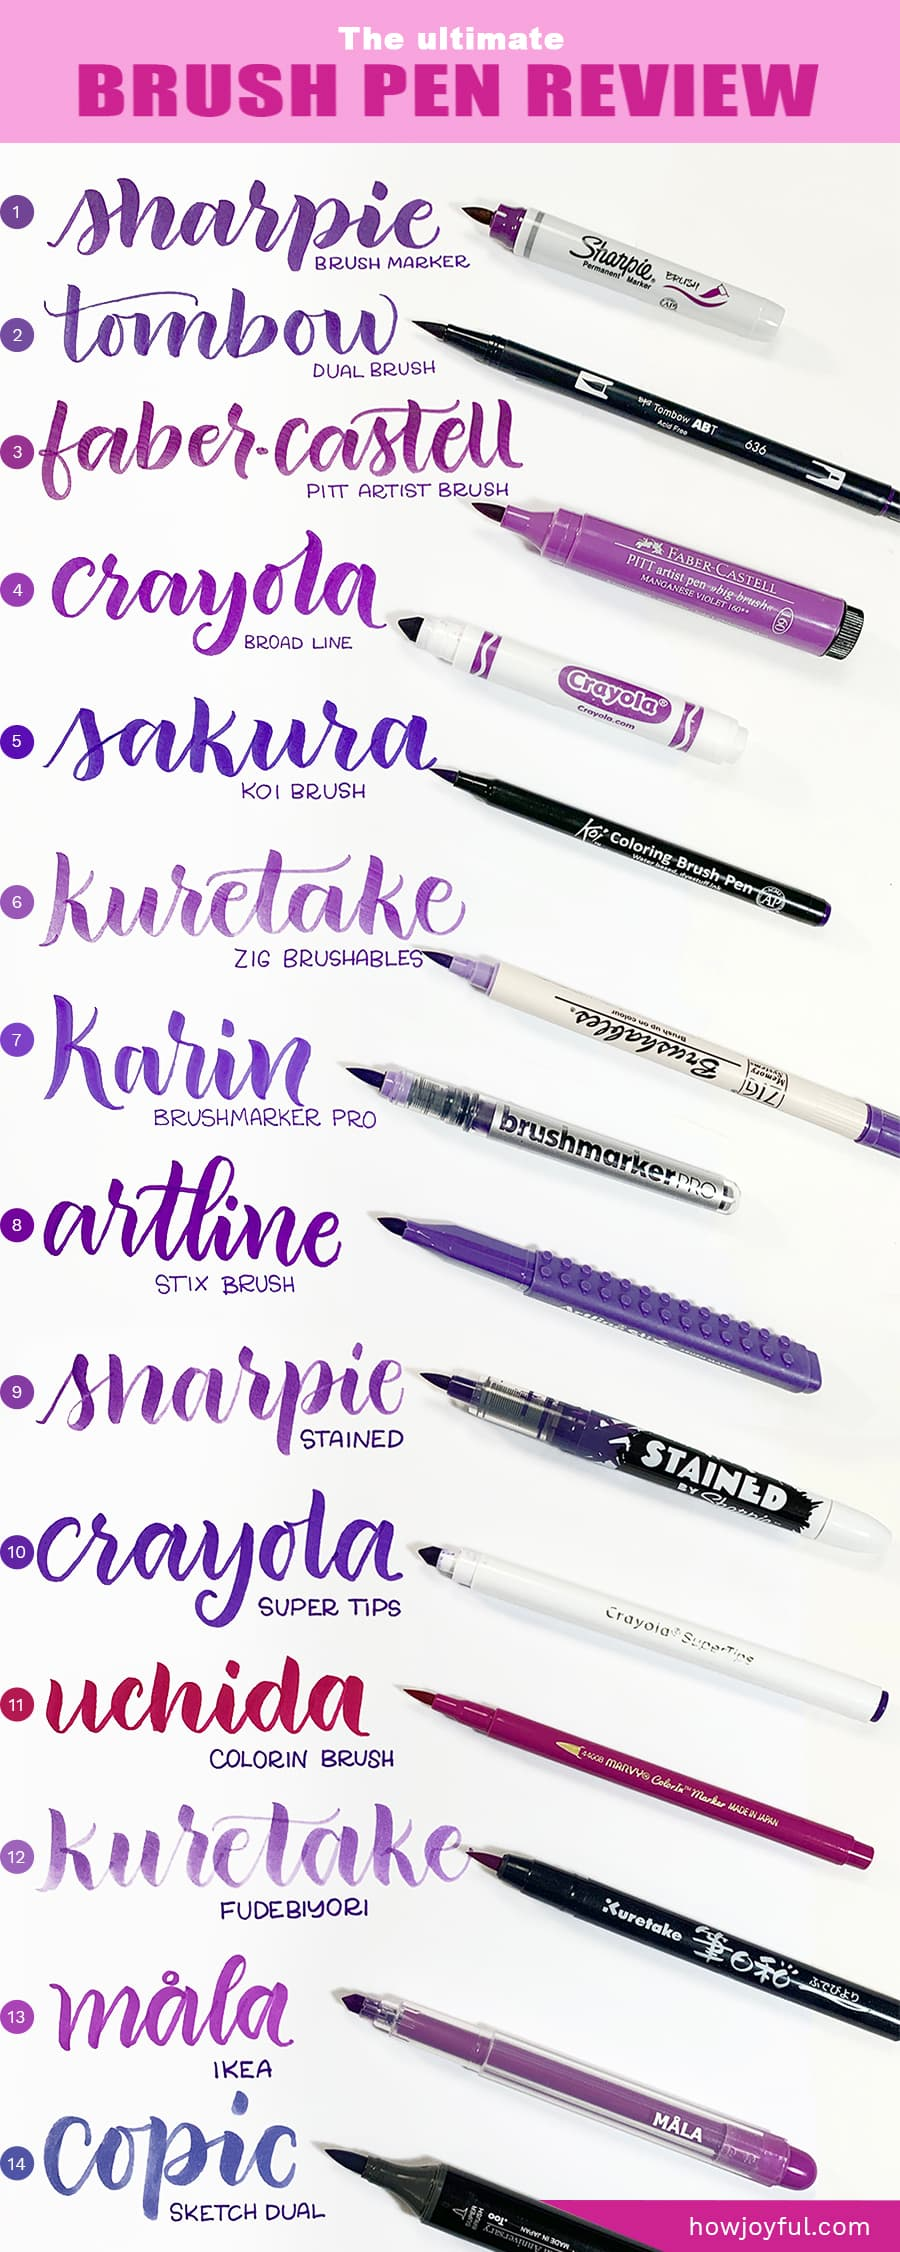 The ultimate brush pen review